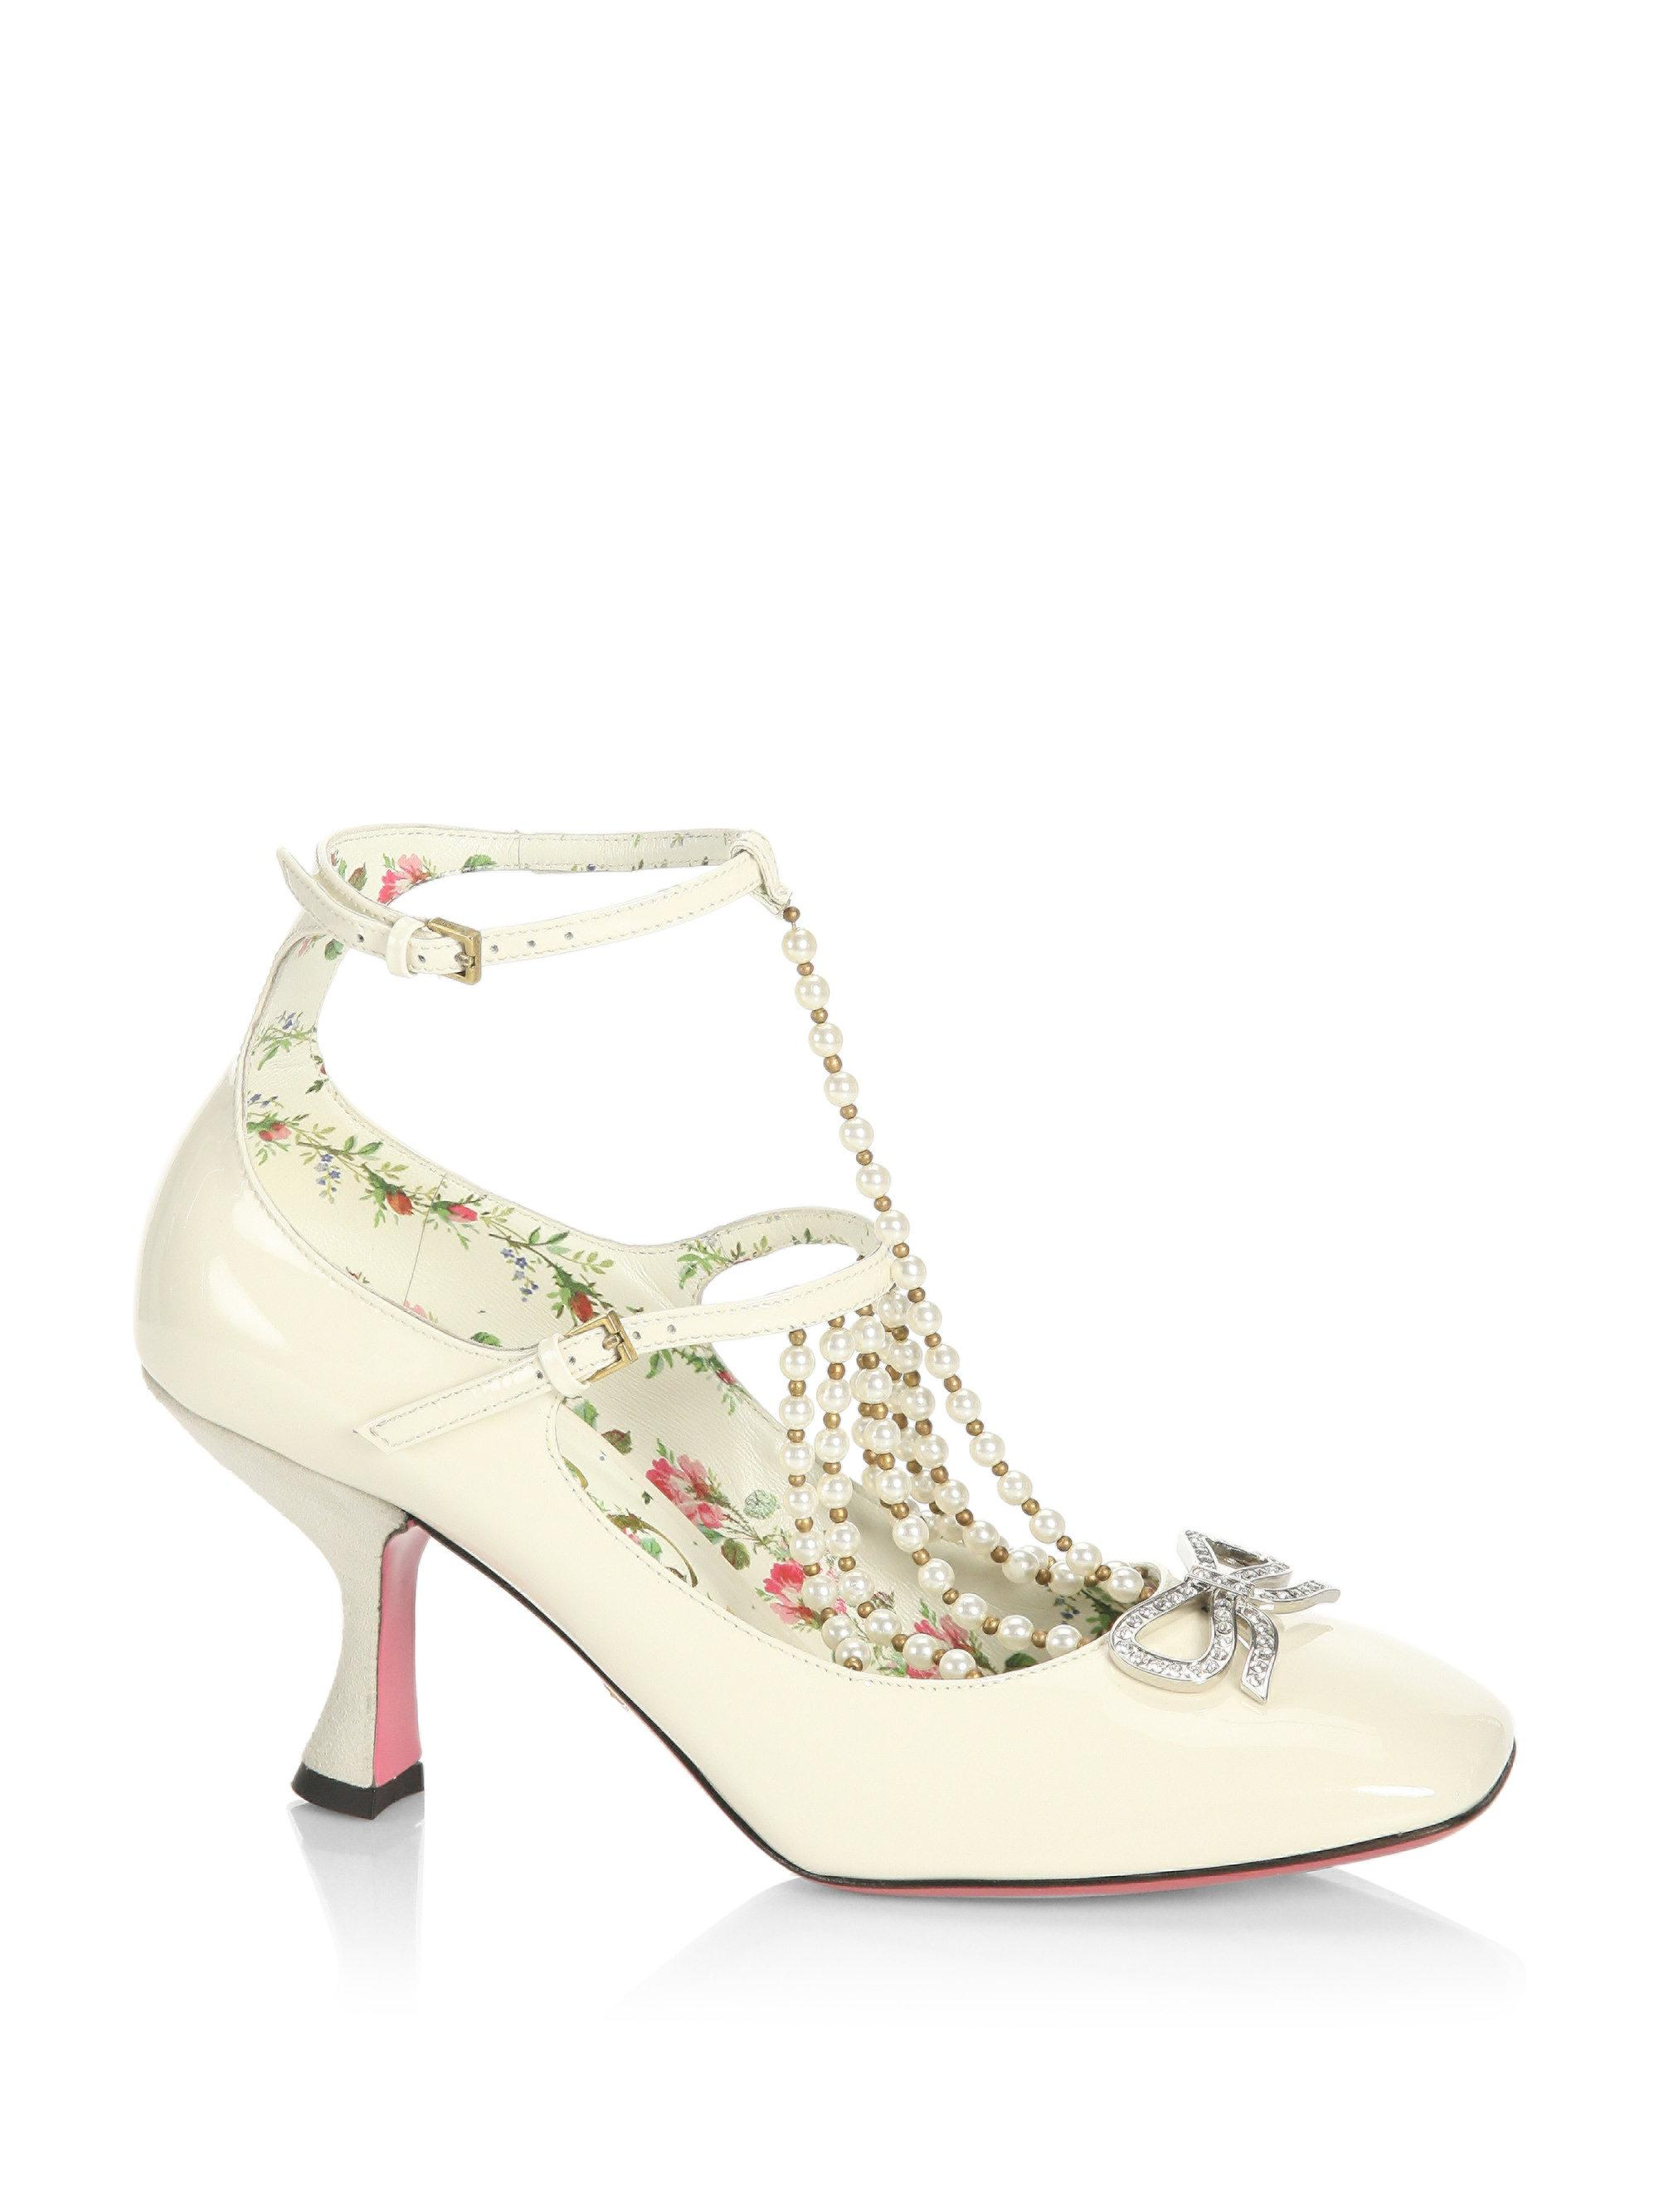 5e9c31ff0dd Lyst - Gucci Taide Pearl-embellished Patent Leather Mary Jane Pumps ...